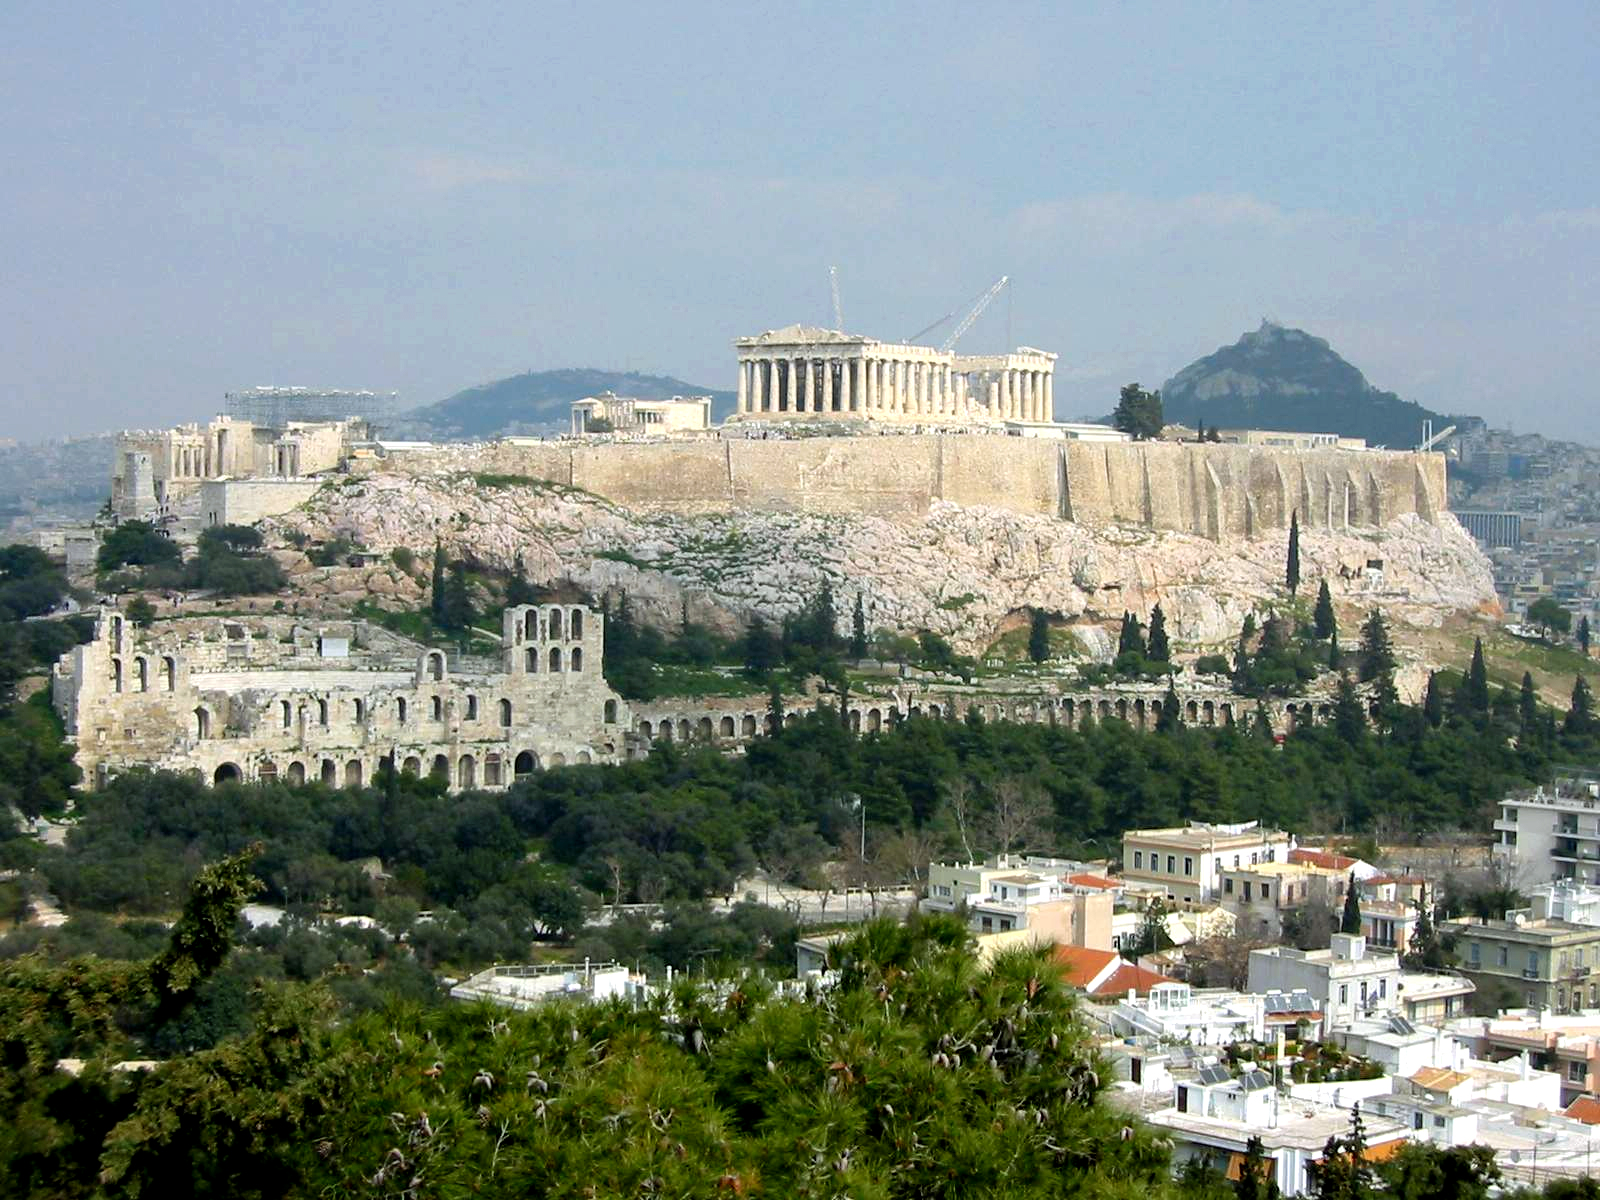 http://upload.wikimedia.org/wikipedia/commons/3/3c/Athens_Acropolis.jpg